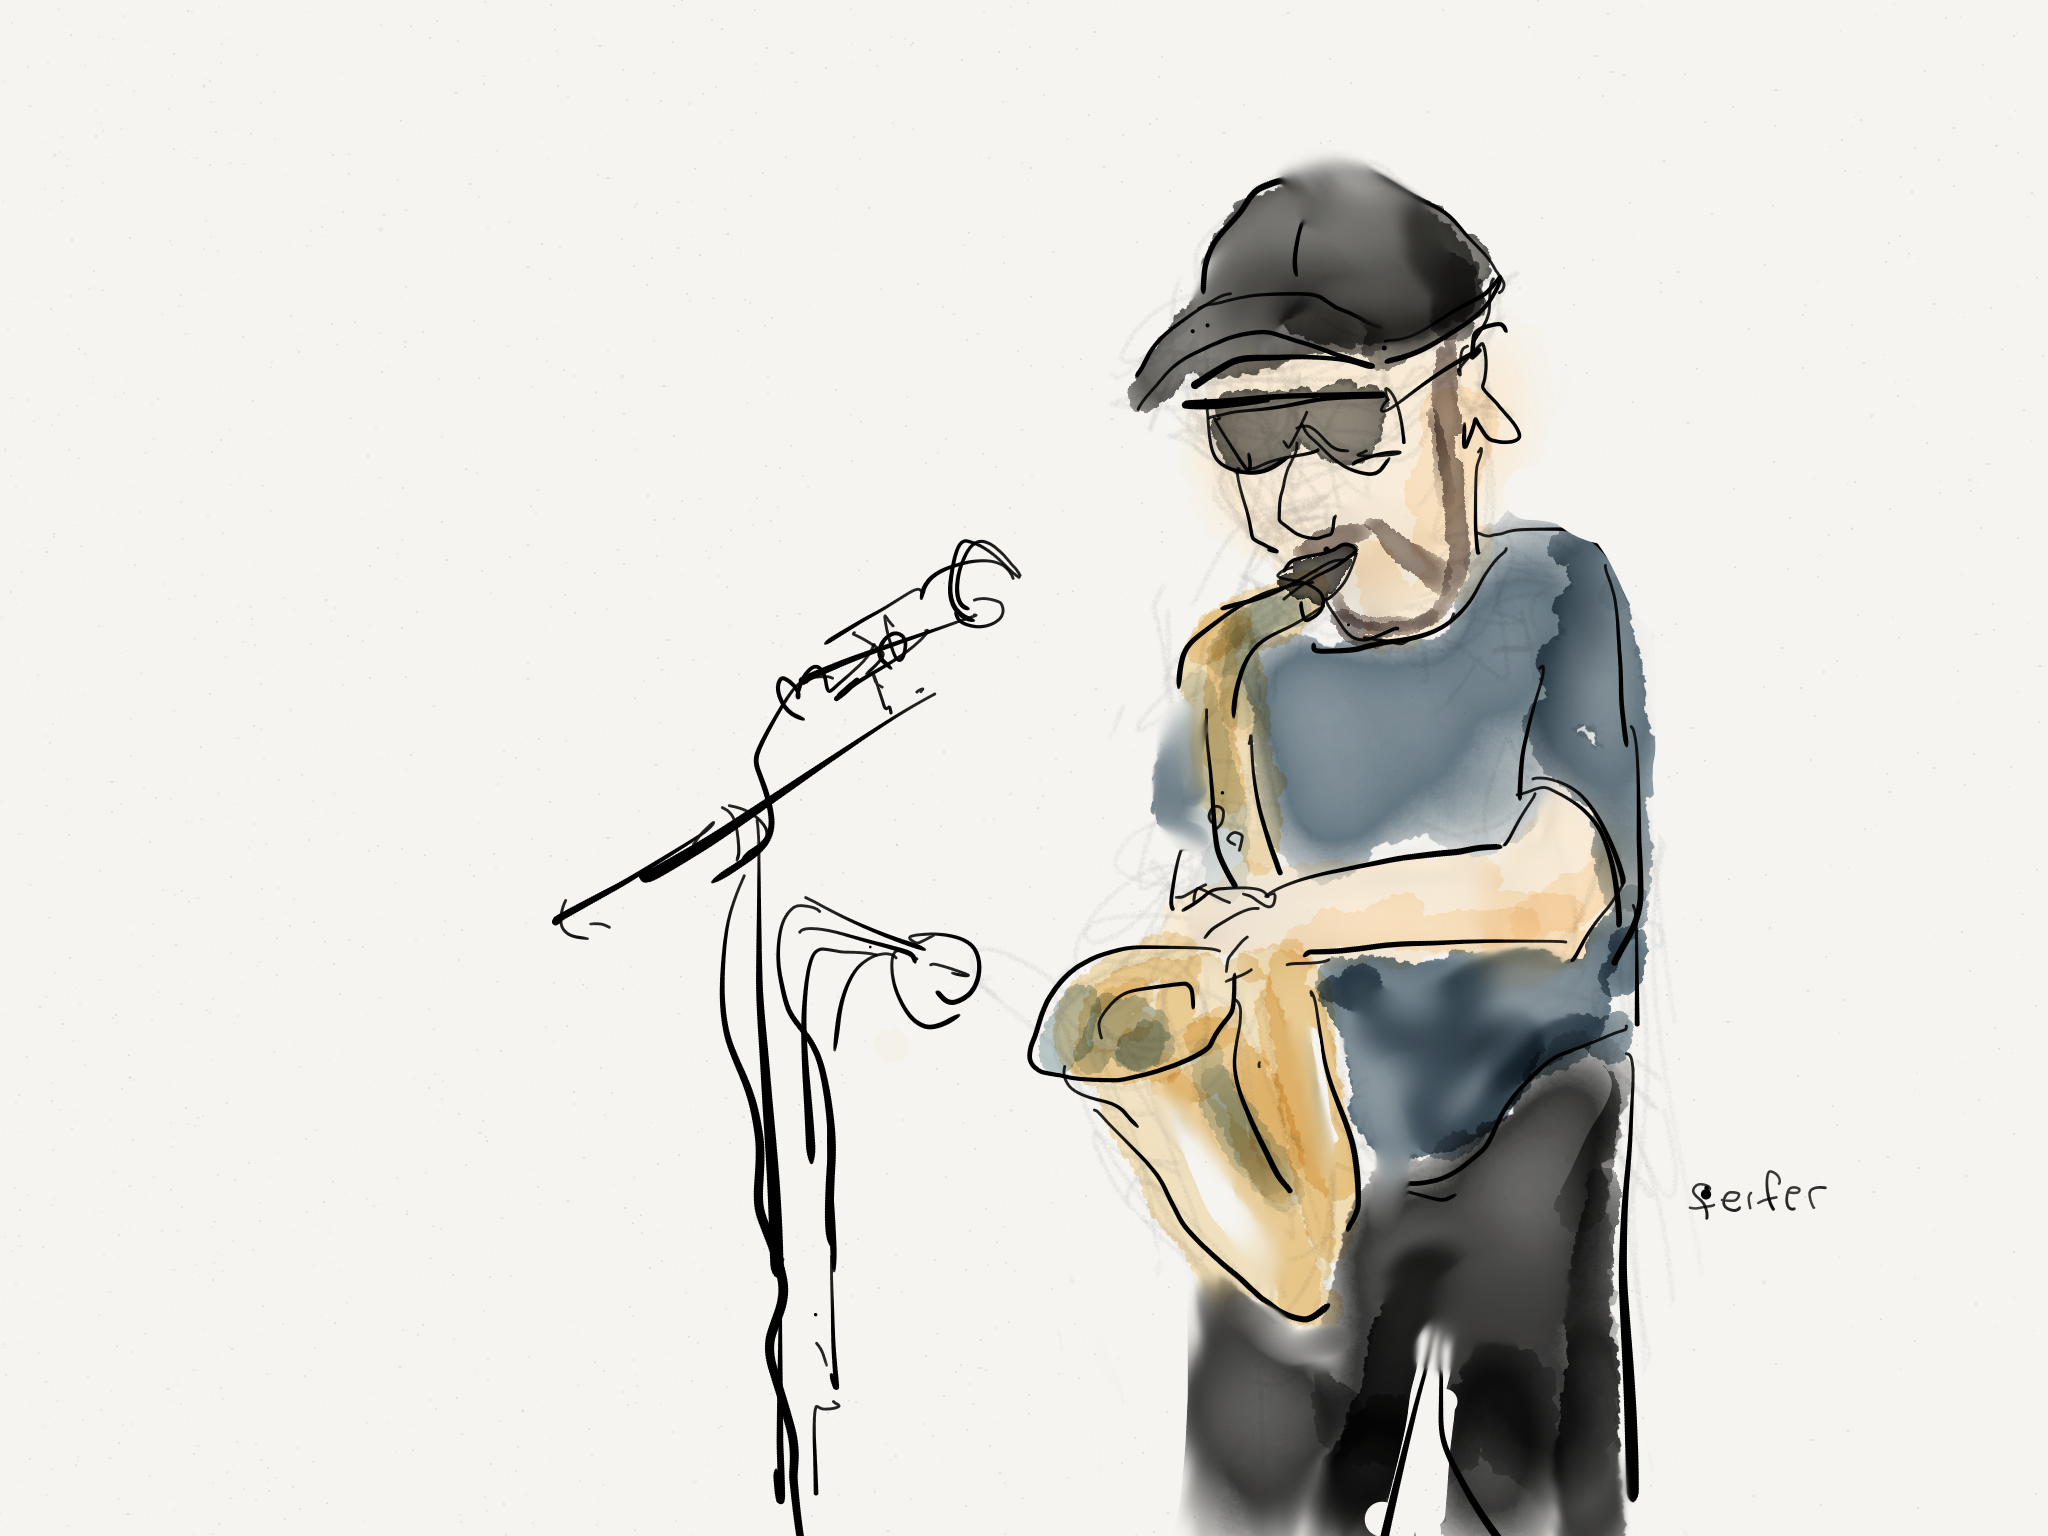 Sax at the Mall